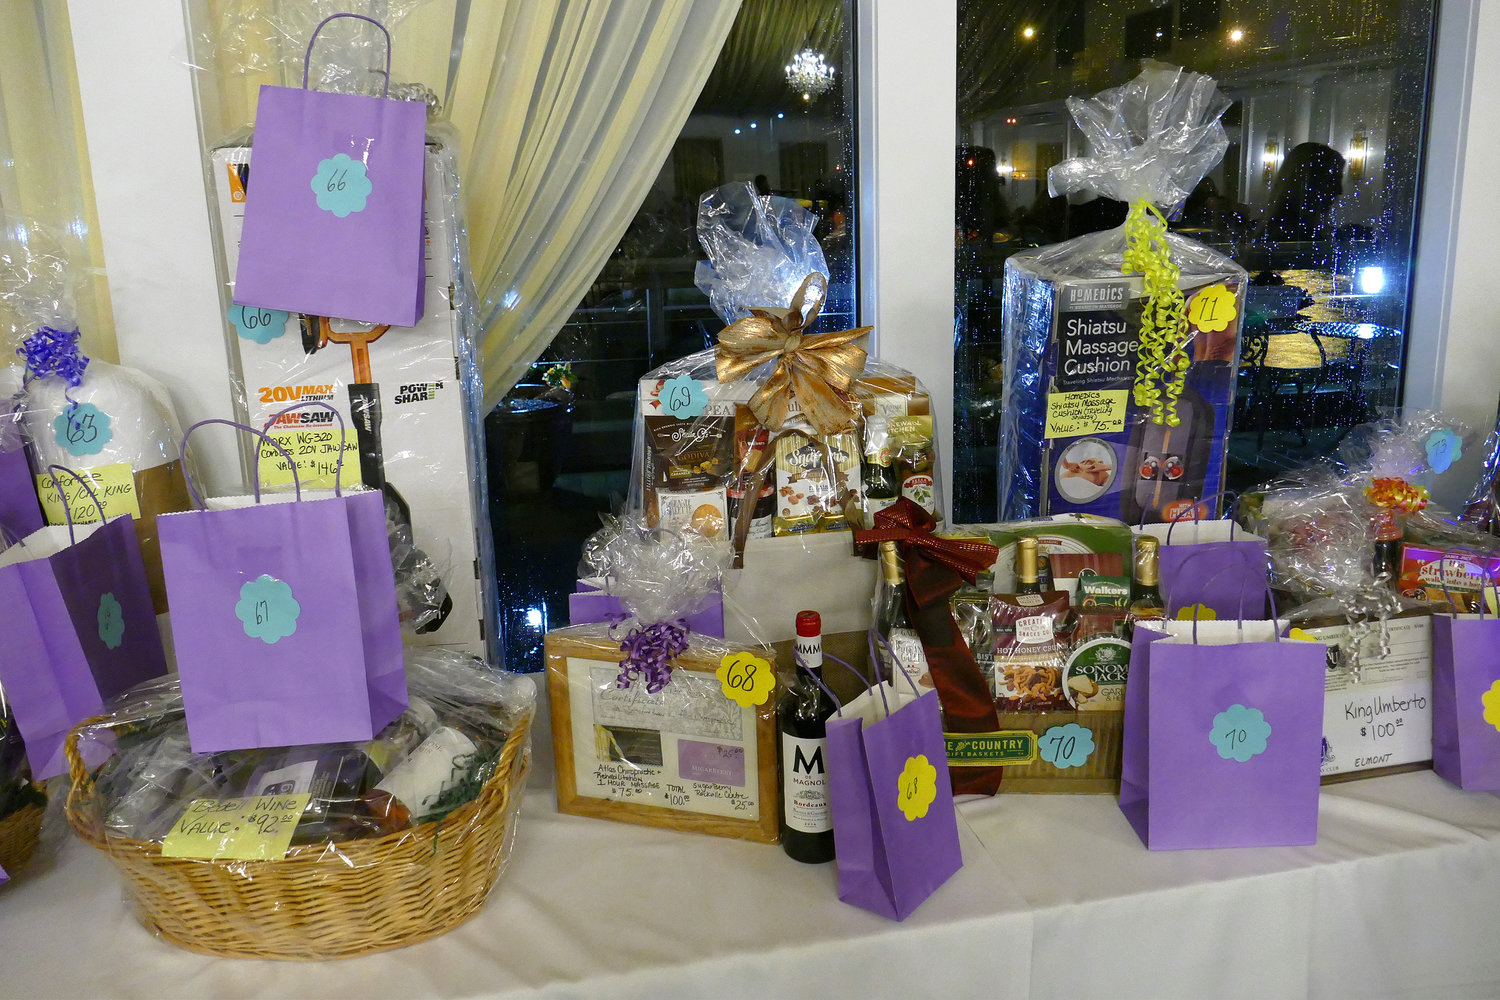 More than 100 businesses donated items and gift baskets to be raffled.